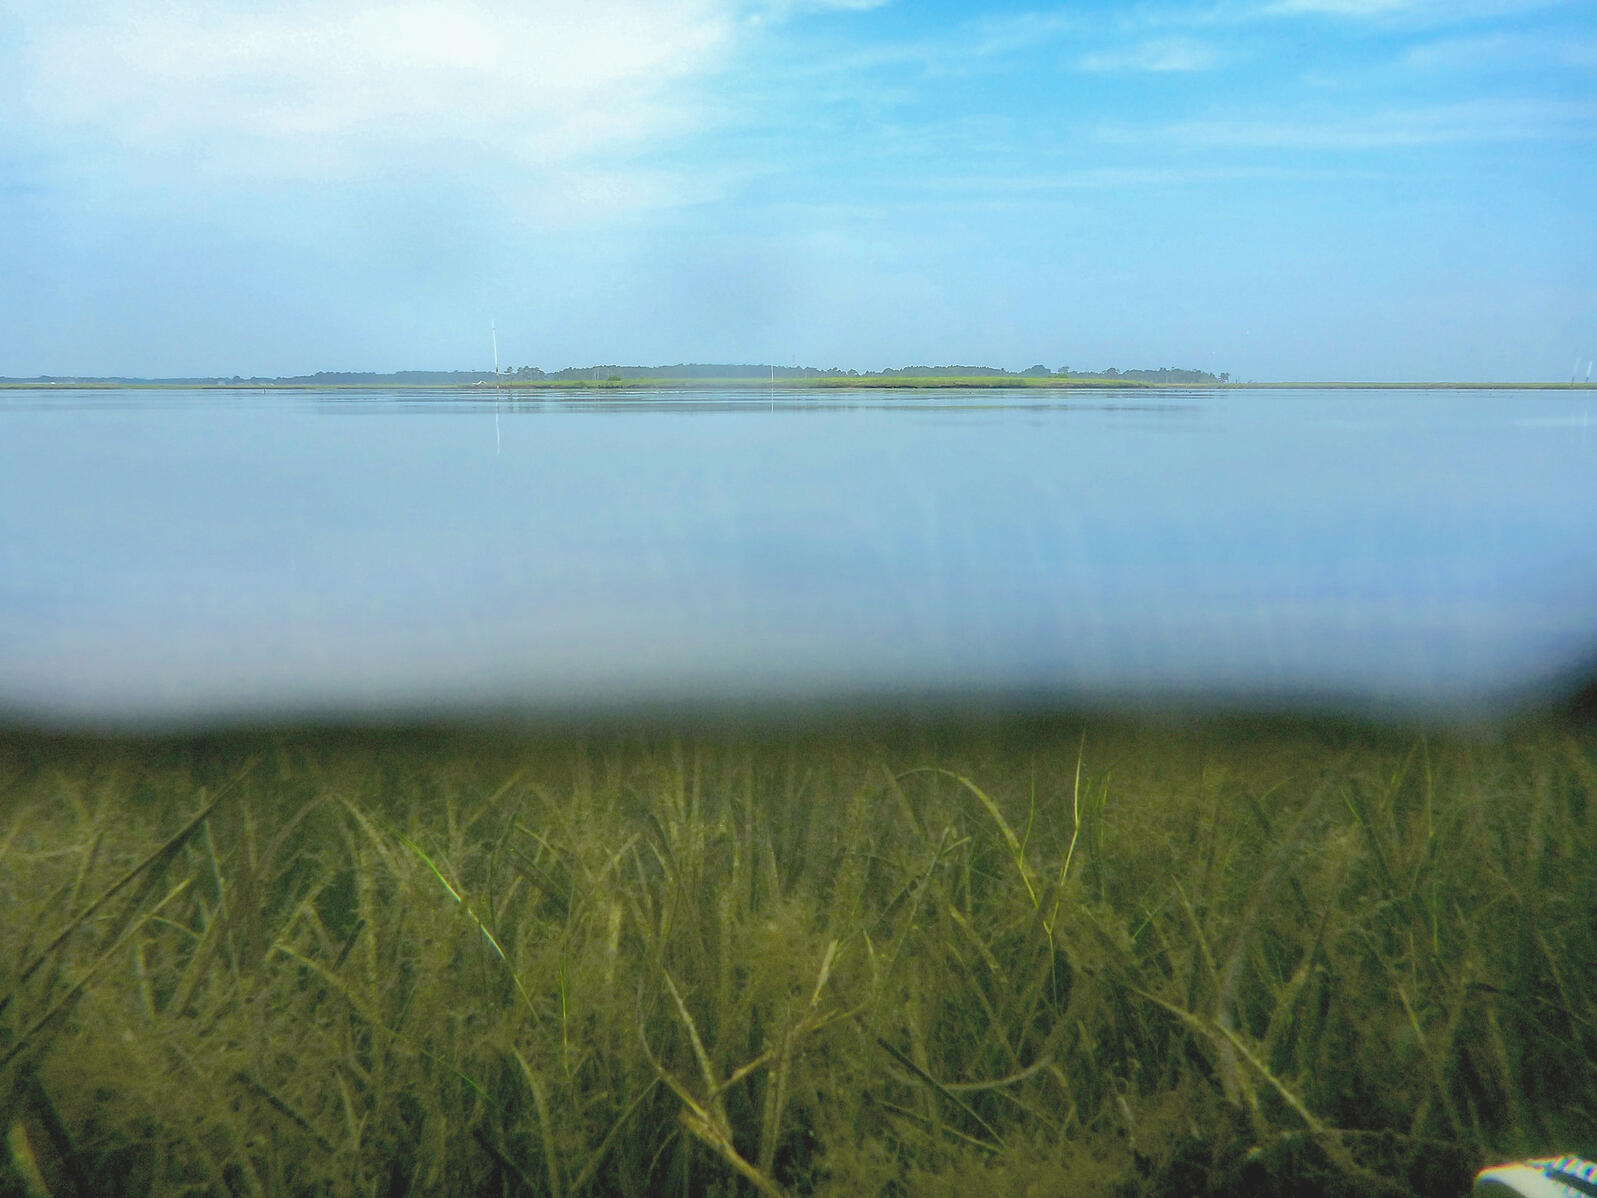 A mix of eelgrass and widgeongrass can be seen near Goodwin Island in the lower York River, an estuary of Chesapeake Bay. Emily French/Virginia Institute of Marine Science/Flickr (CC BY NC ND 2.0)